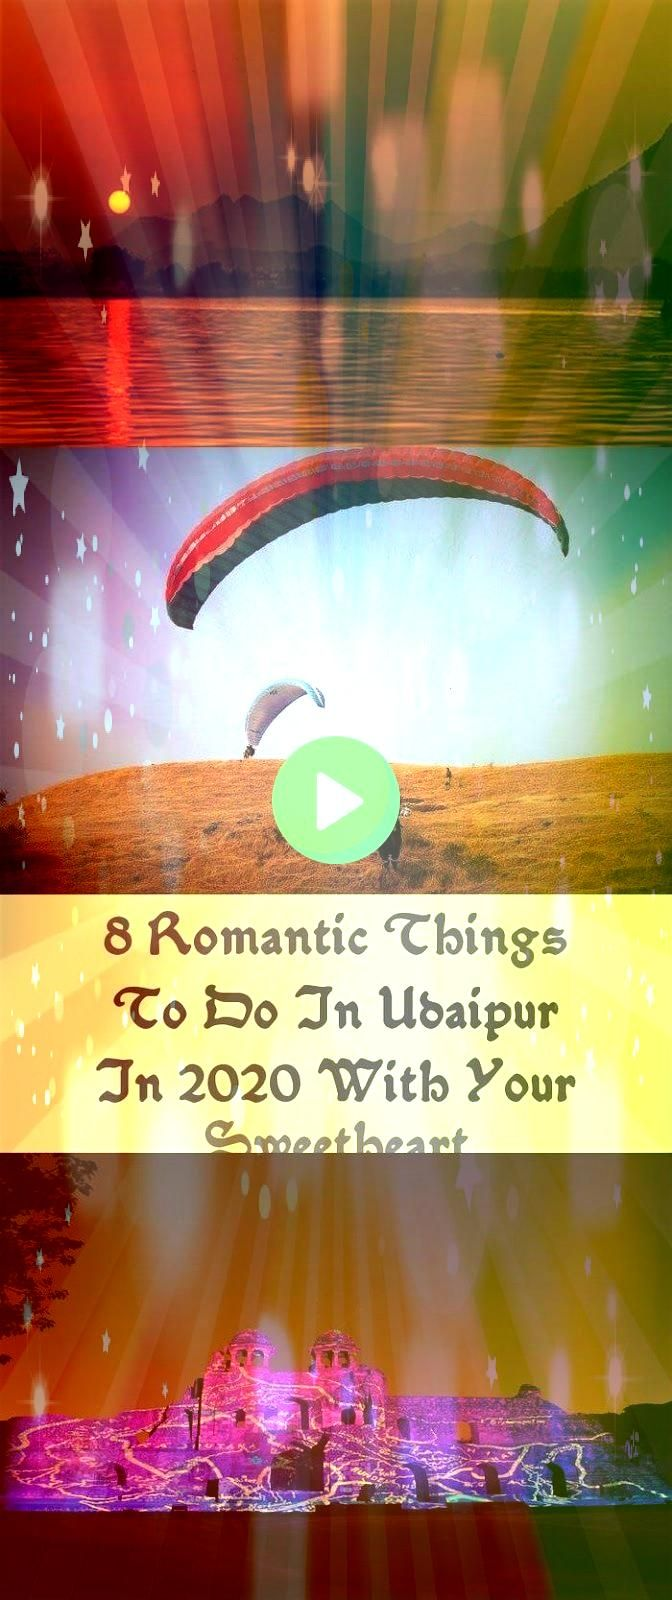 Romantic Issues To Do In Udaipur In 2020 With Your Sweetheart Eight Romantic Issues To Do In Udaipur In 2020 With Your Sweetheart  Vietnam Route Map 5 Ways to Make an Ine...